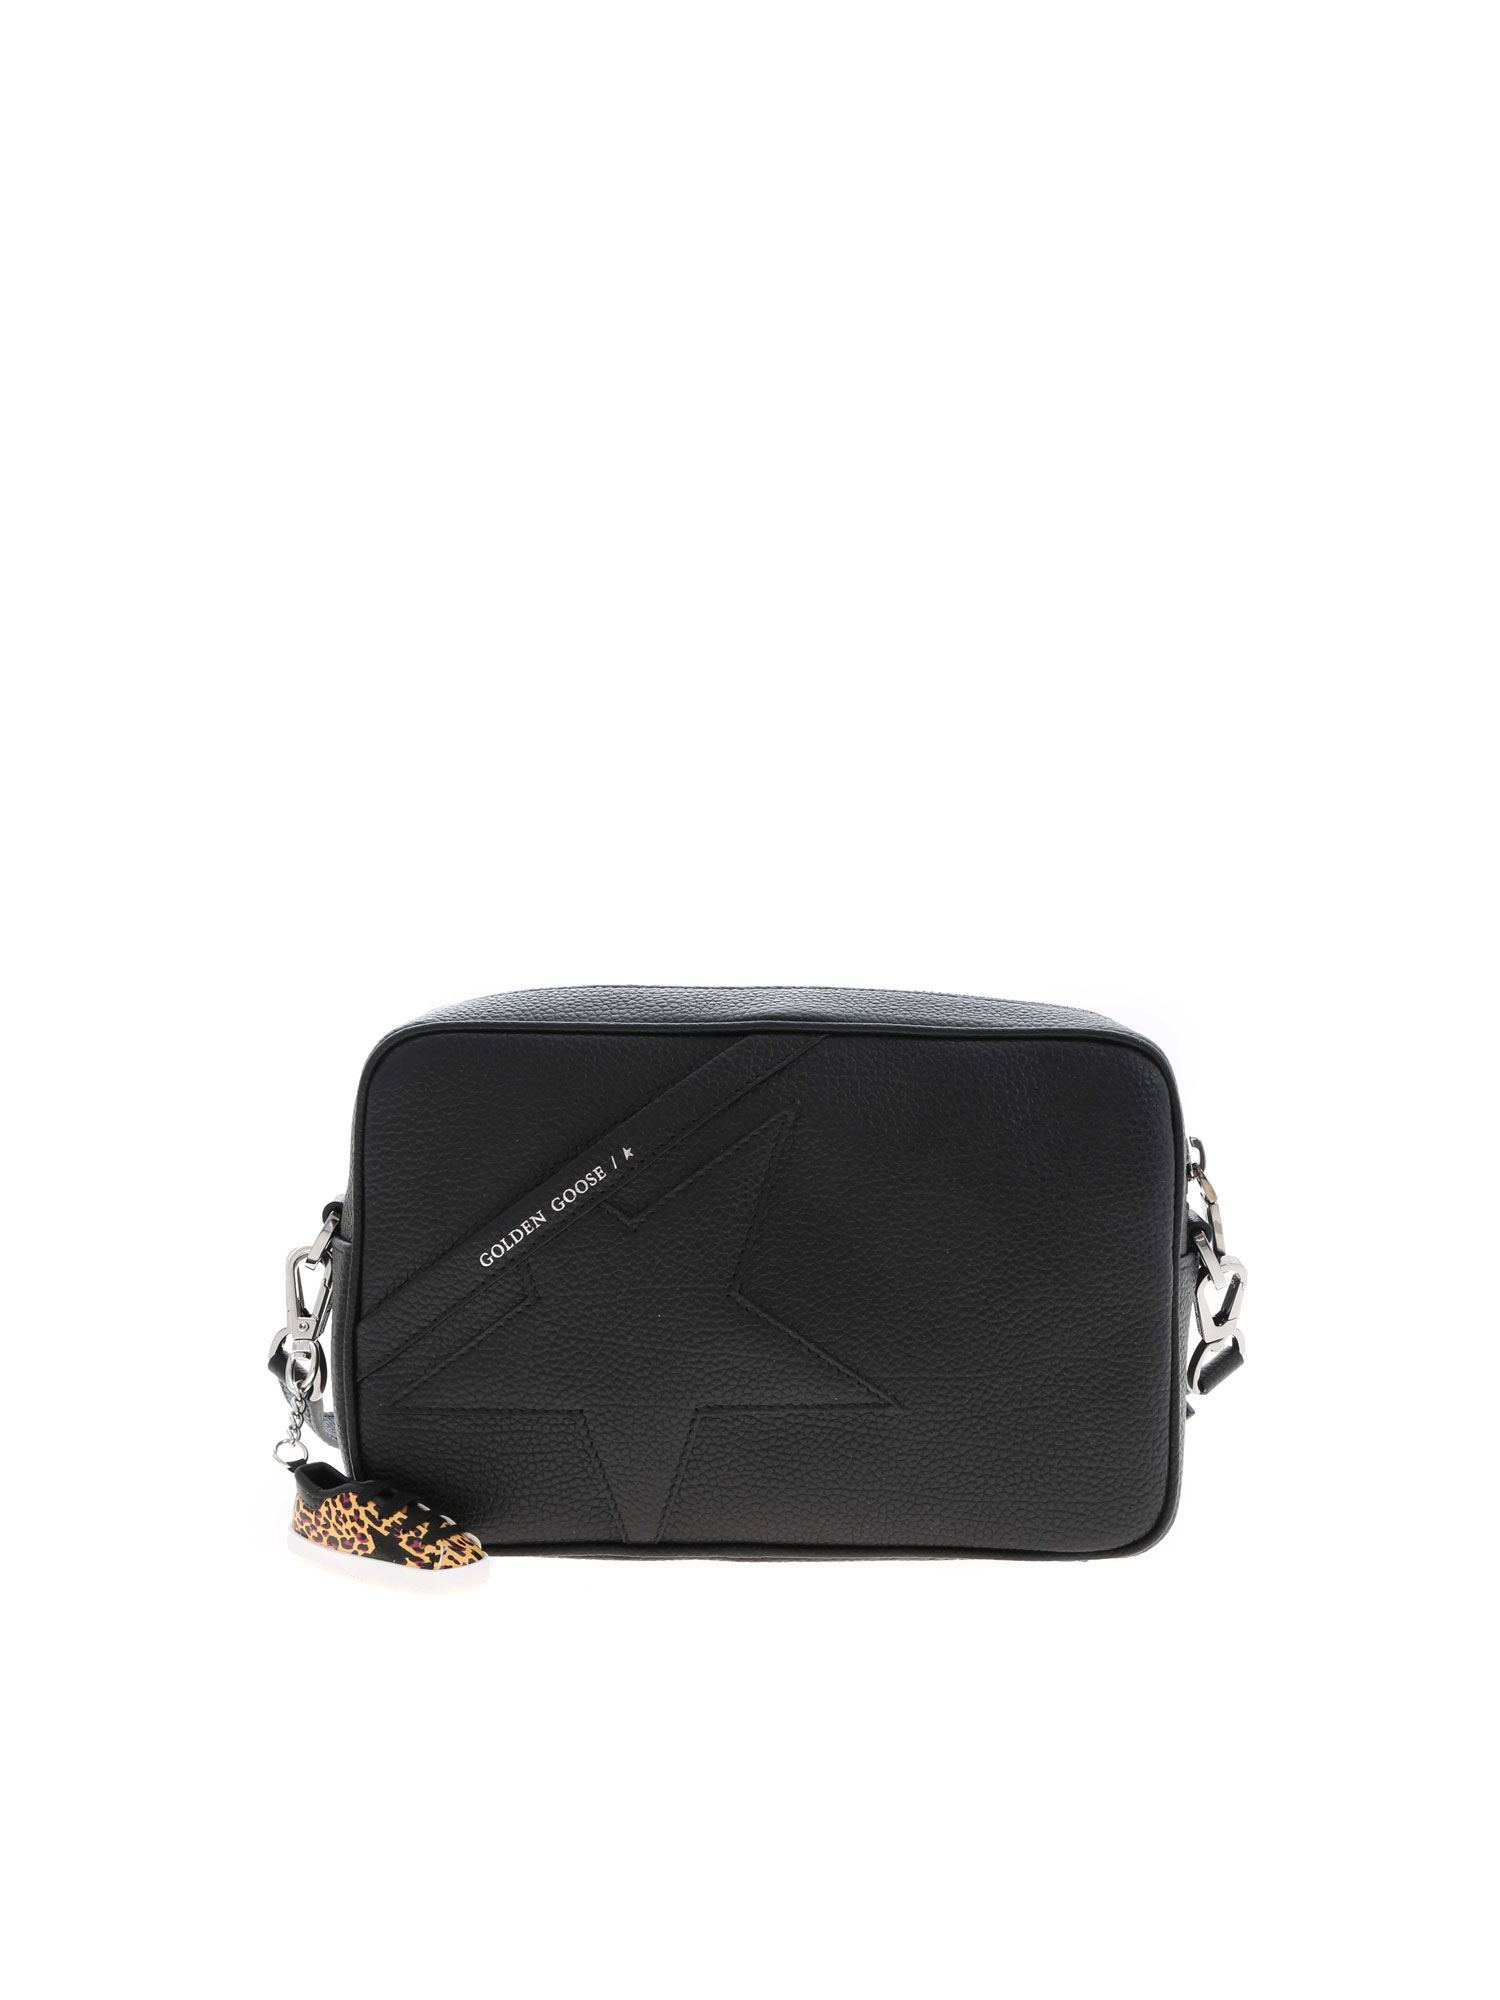 Golden Goose STAR SHOULDER BAG IN BLACK